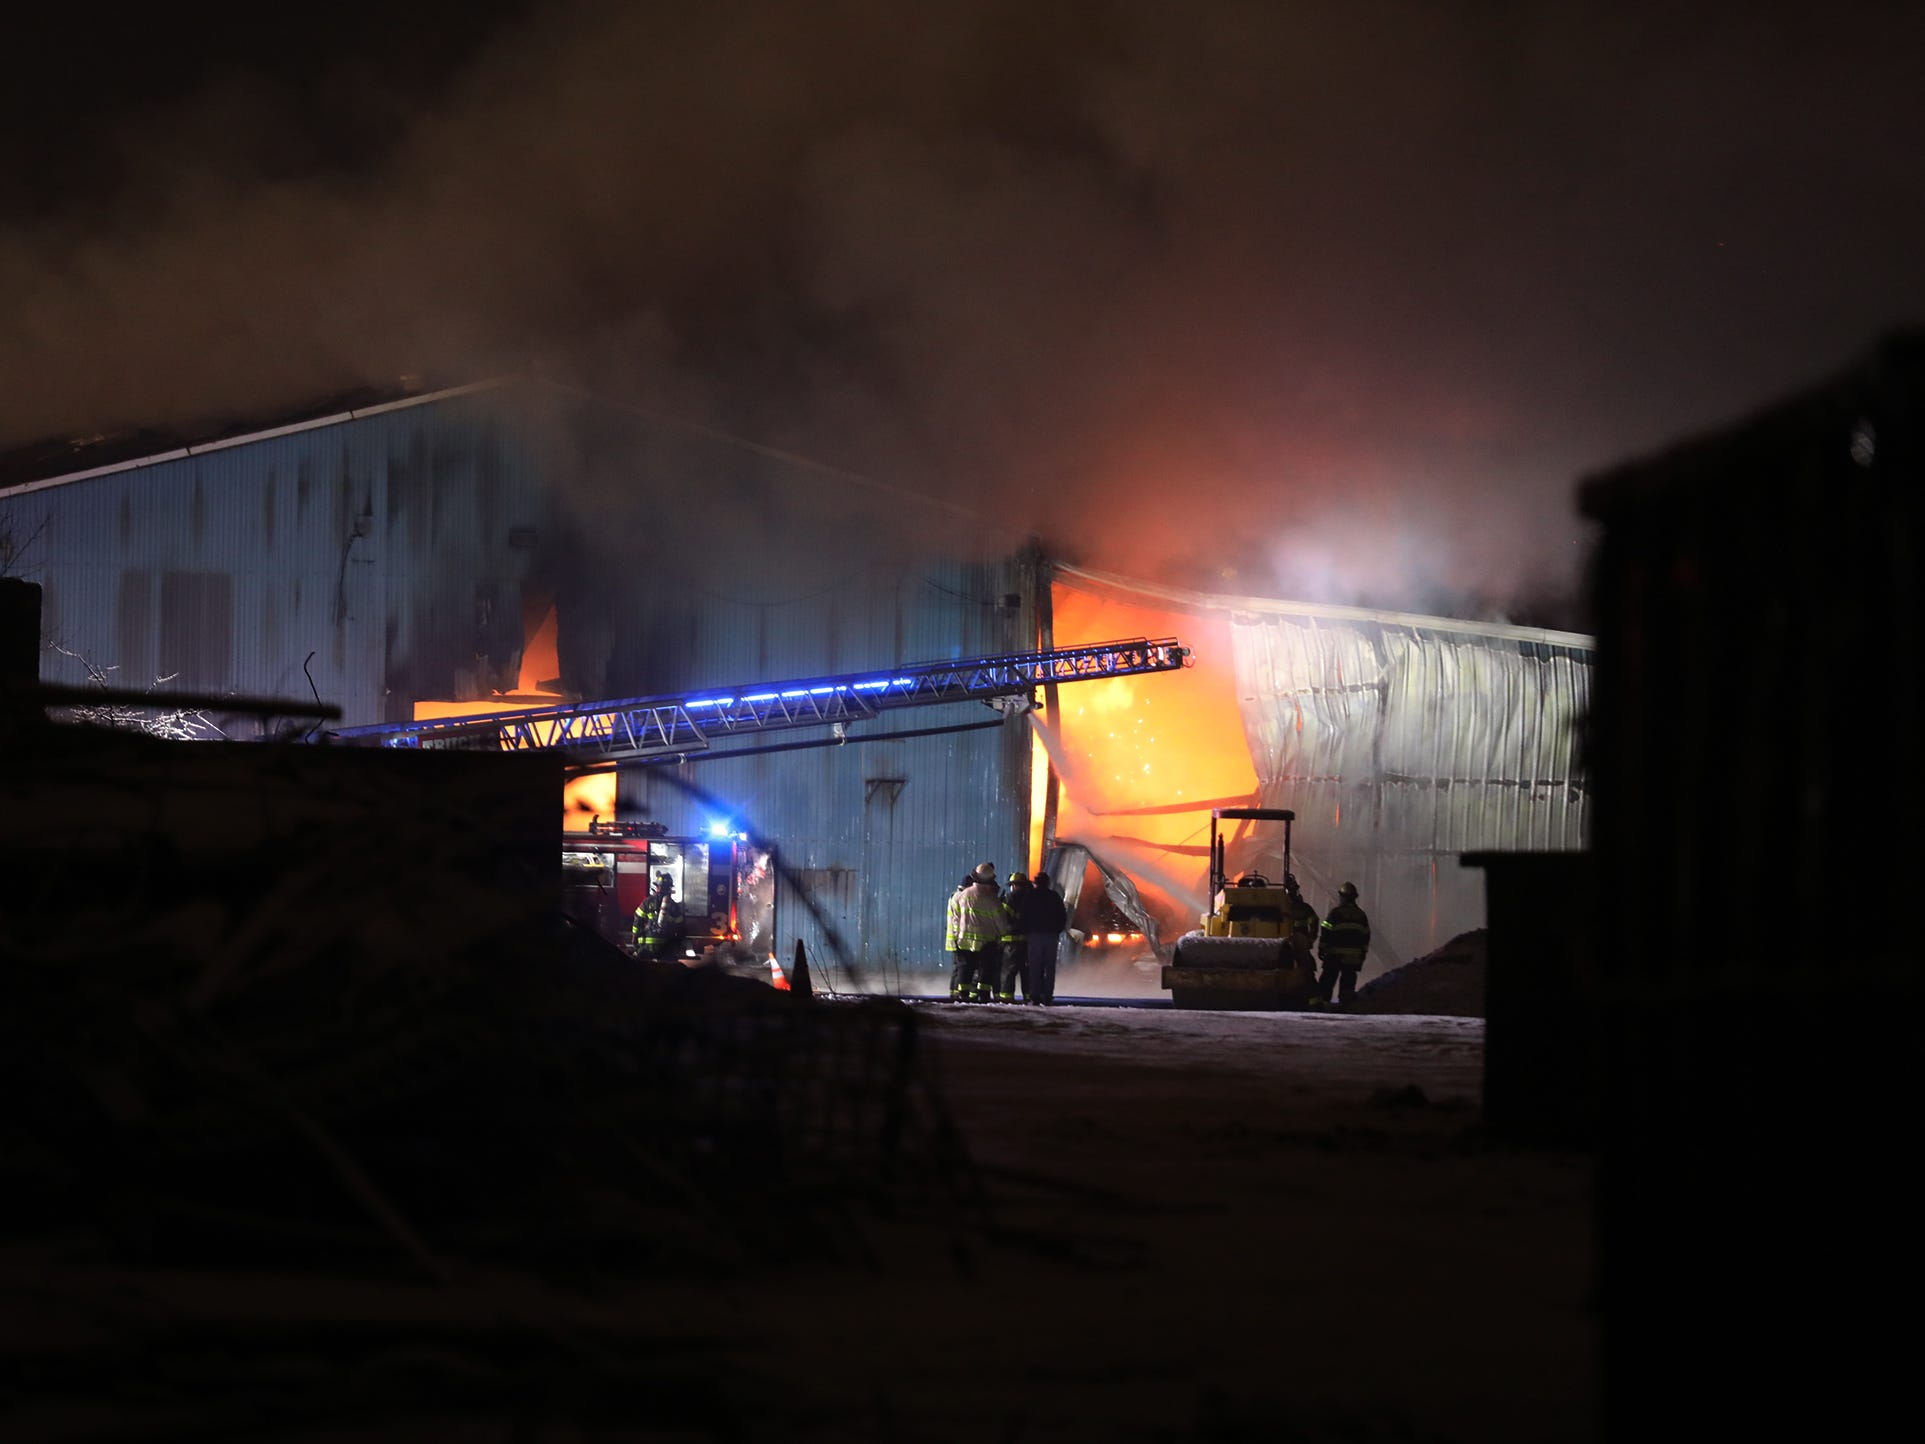 Flames engulfed the entire interior of the building.